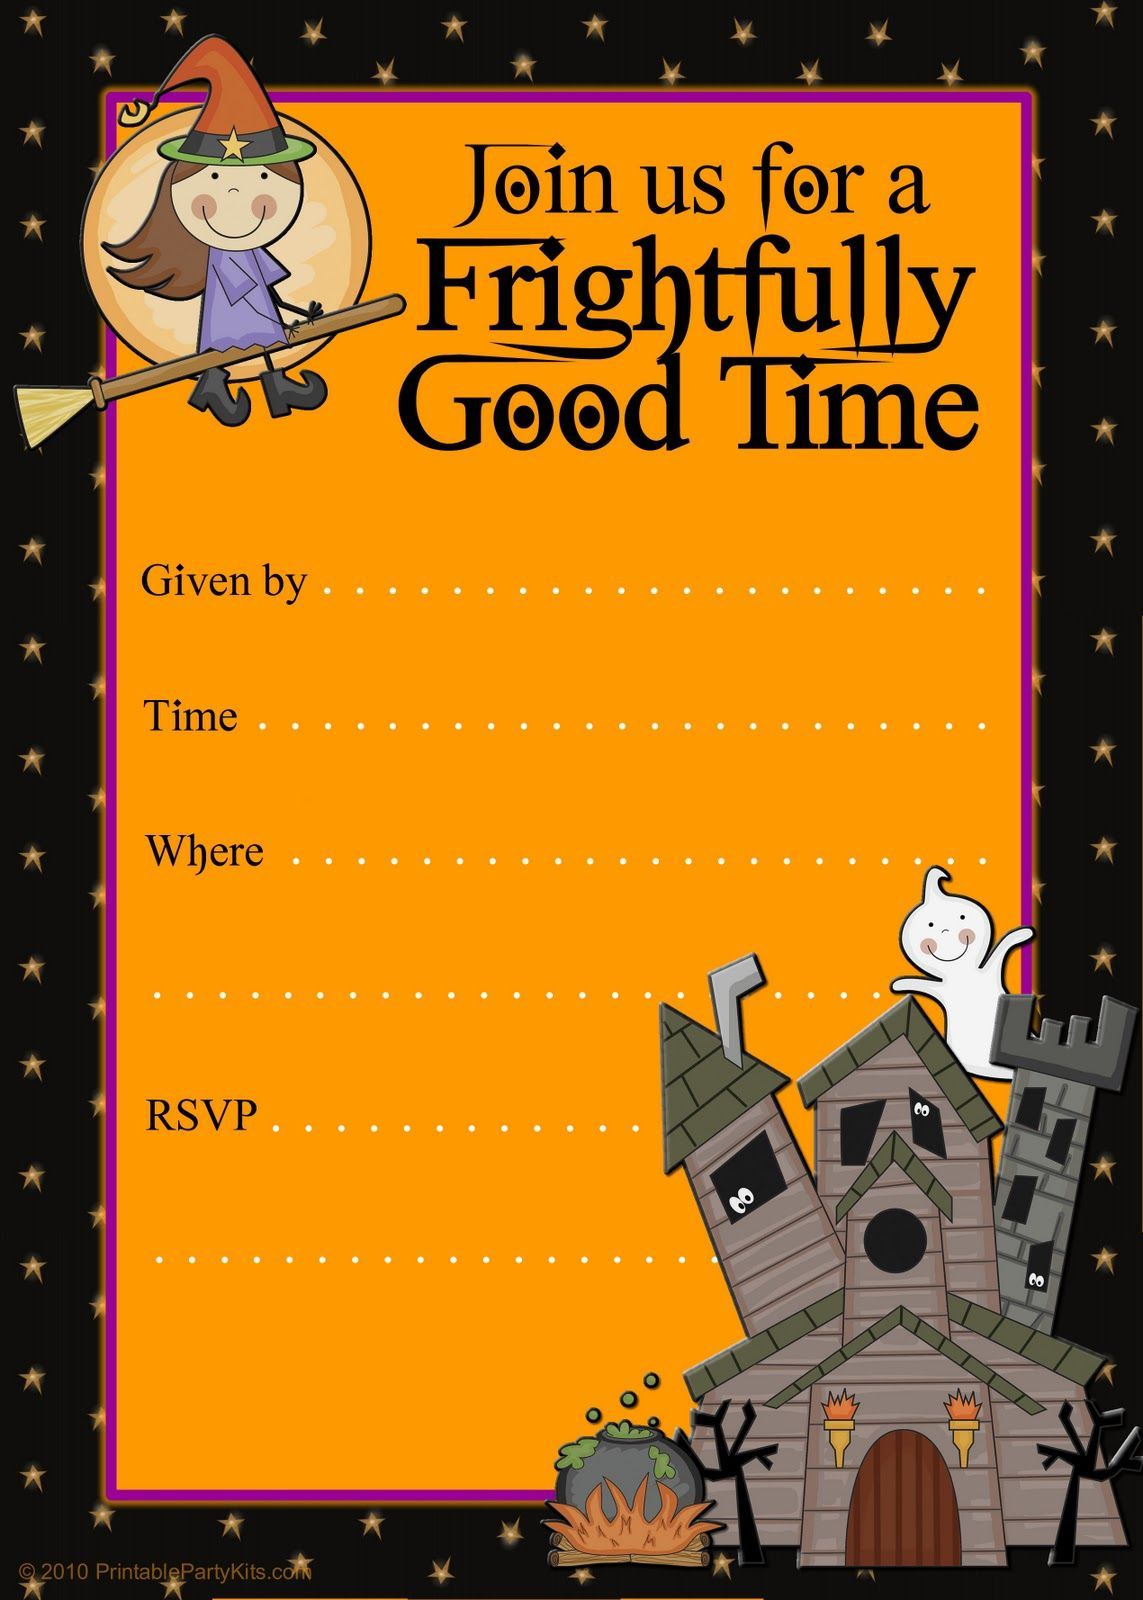 006 Surprising Halloween Party Invite Template High Resolution  Spooky Invitation Free Printable Birthday DownloadFull